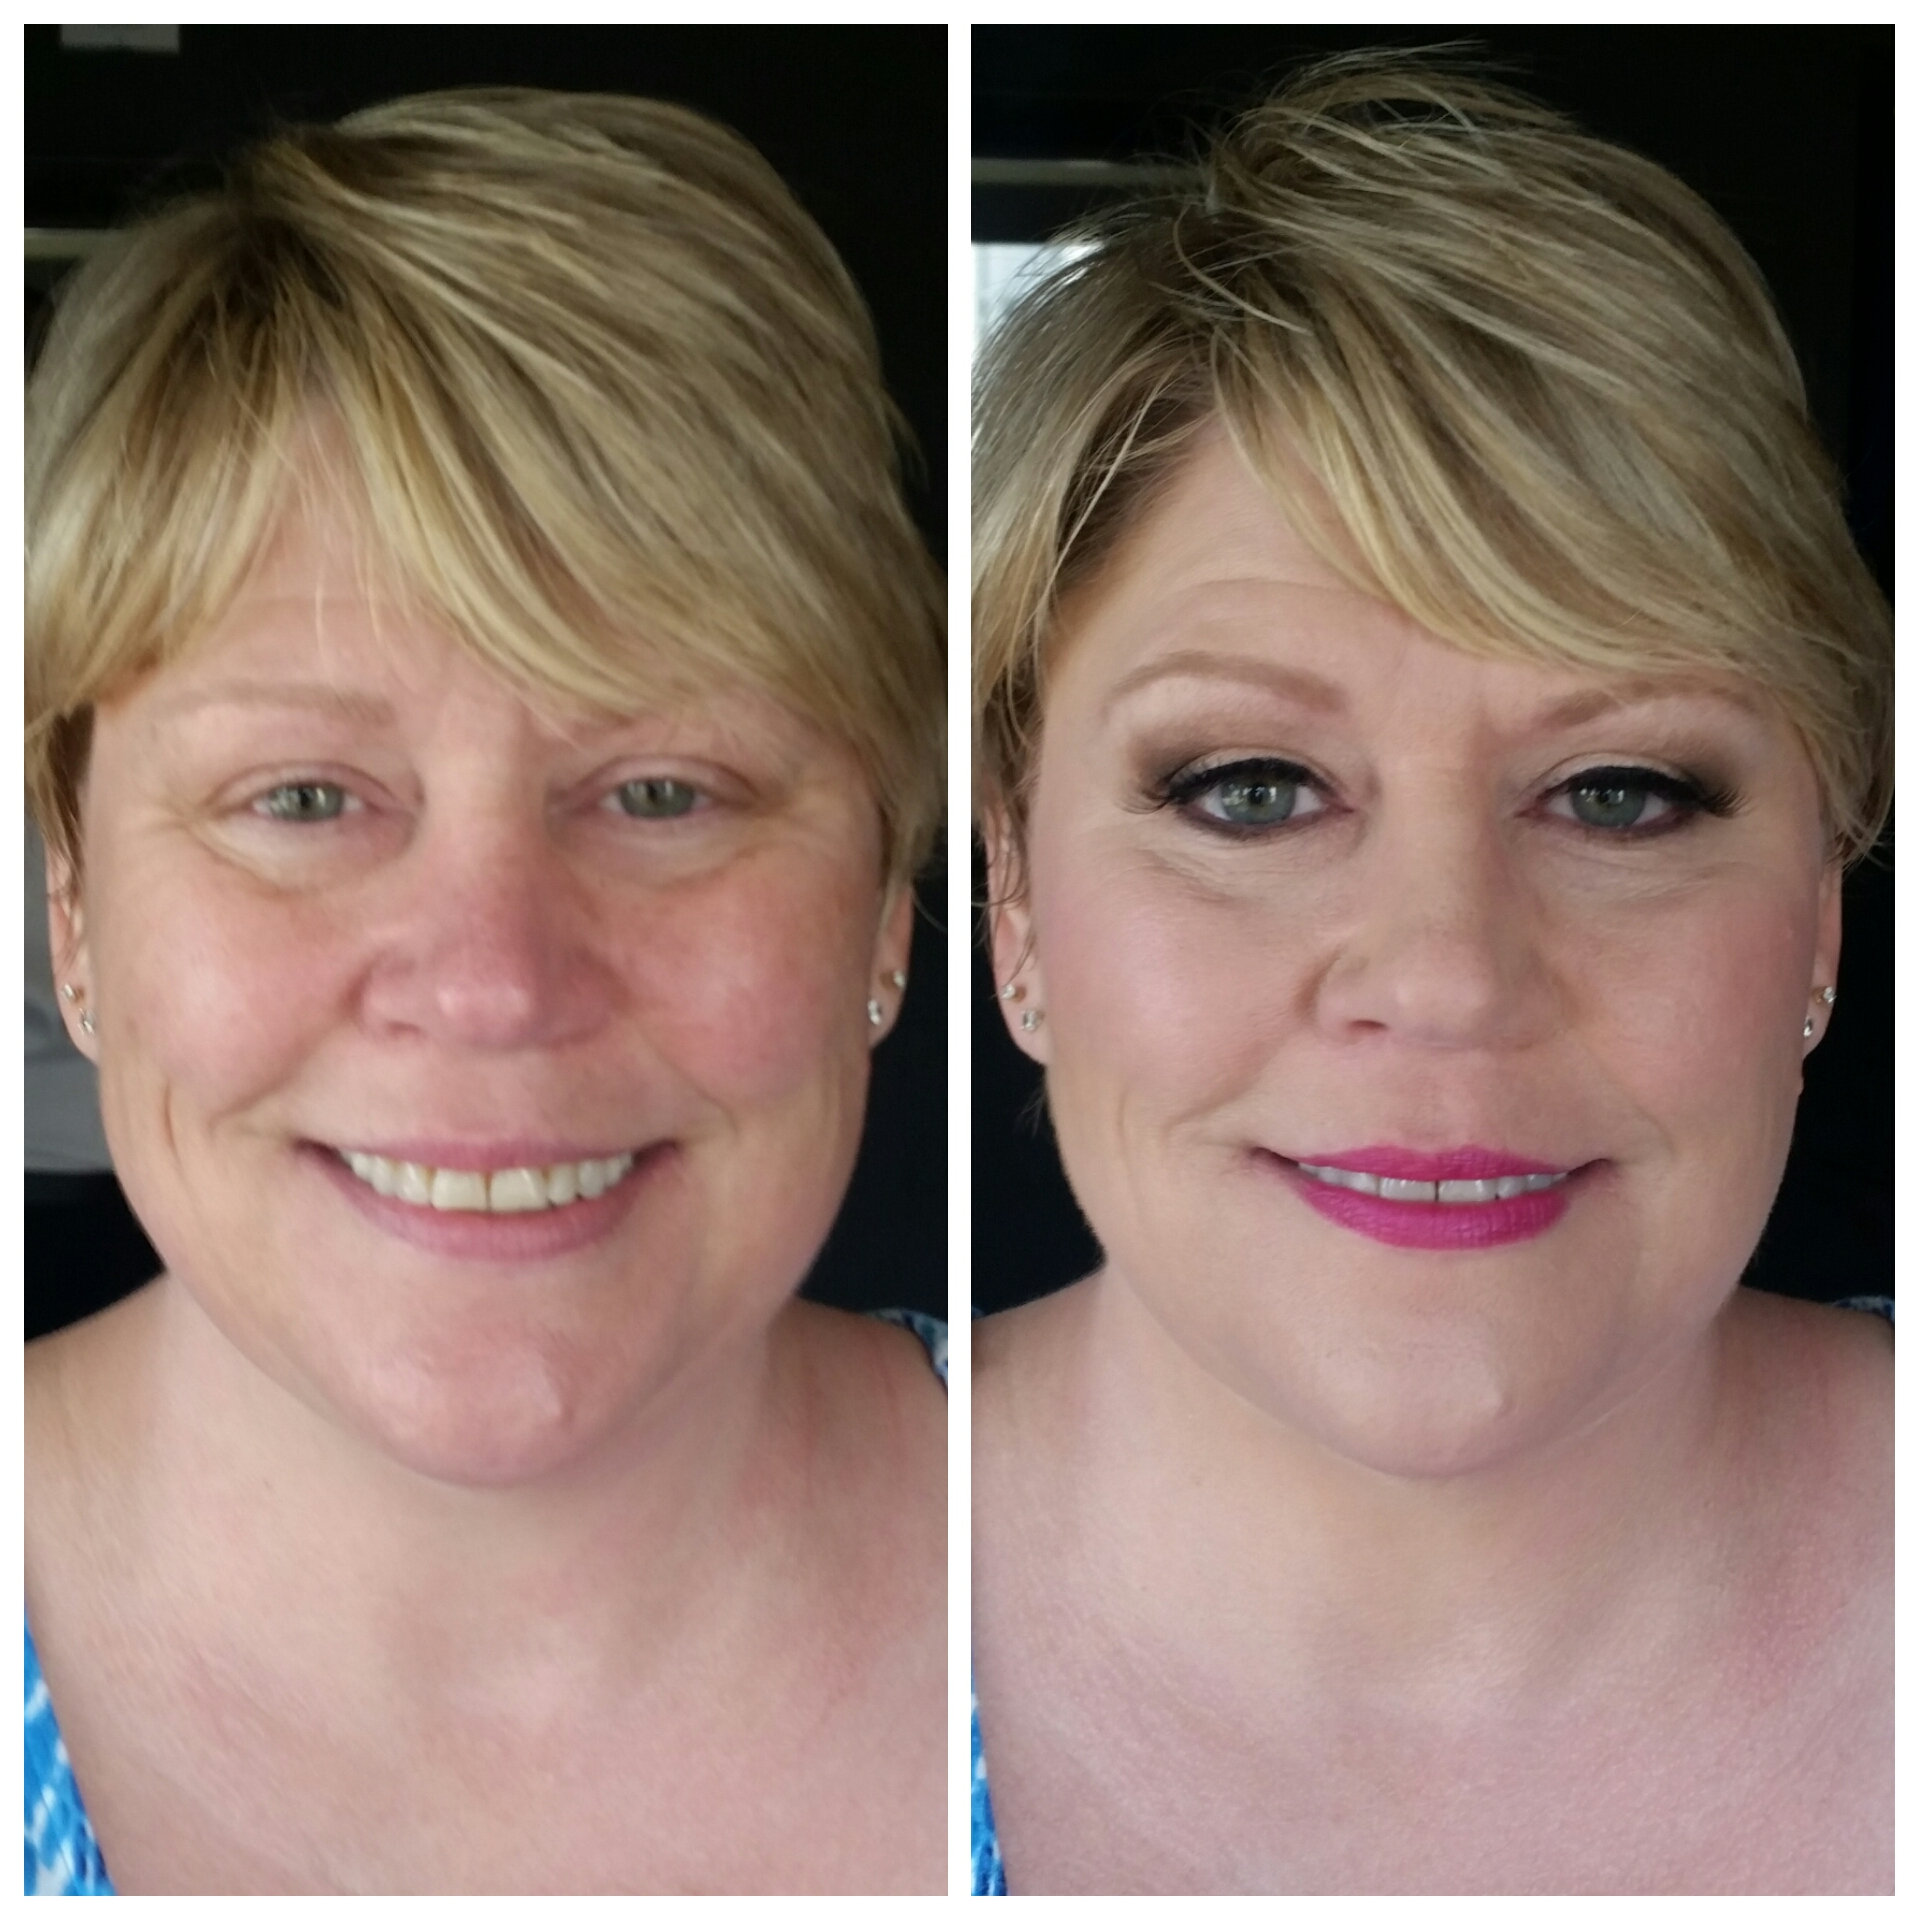 Glamorous Mature Makeup Application with Airbrush and Lashes St Paul.jpg